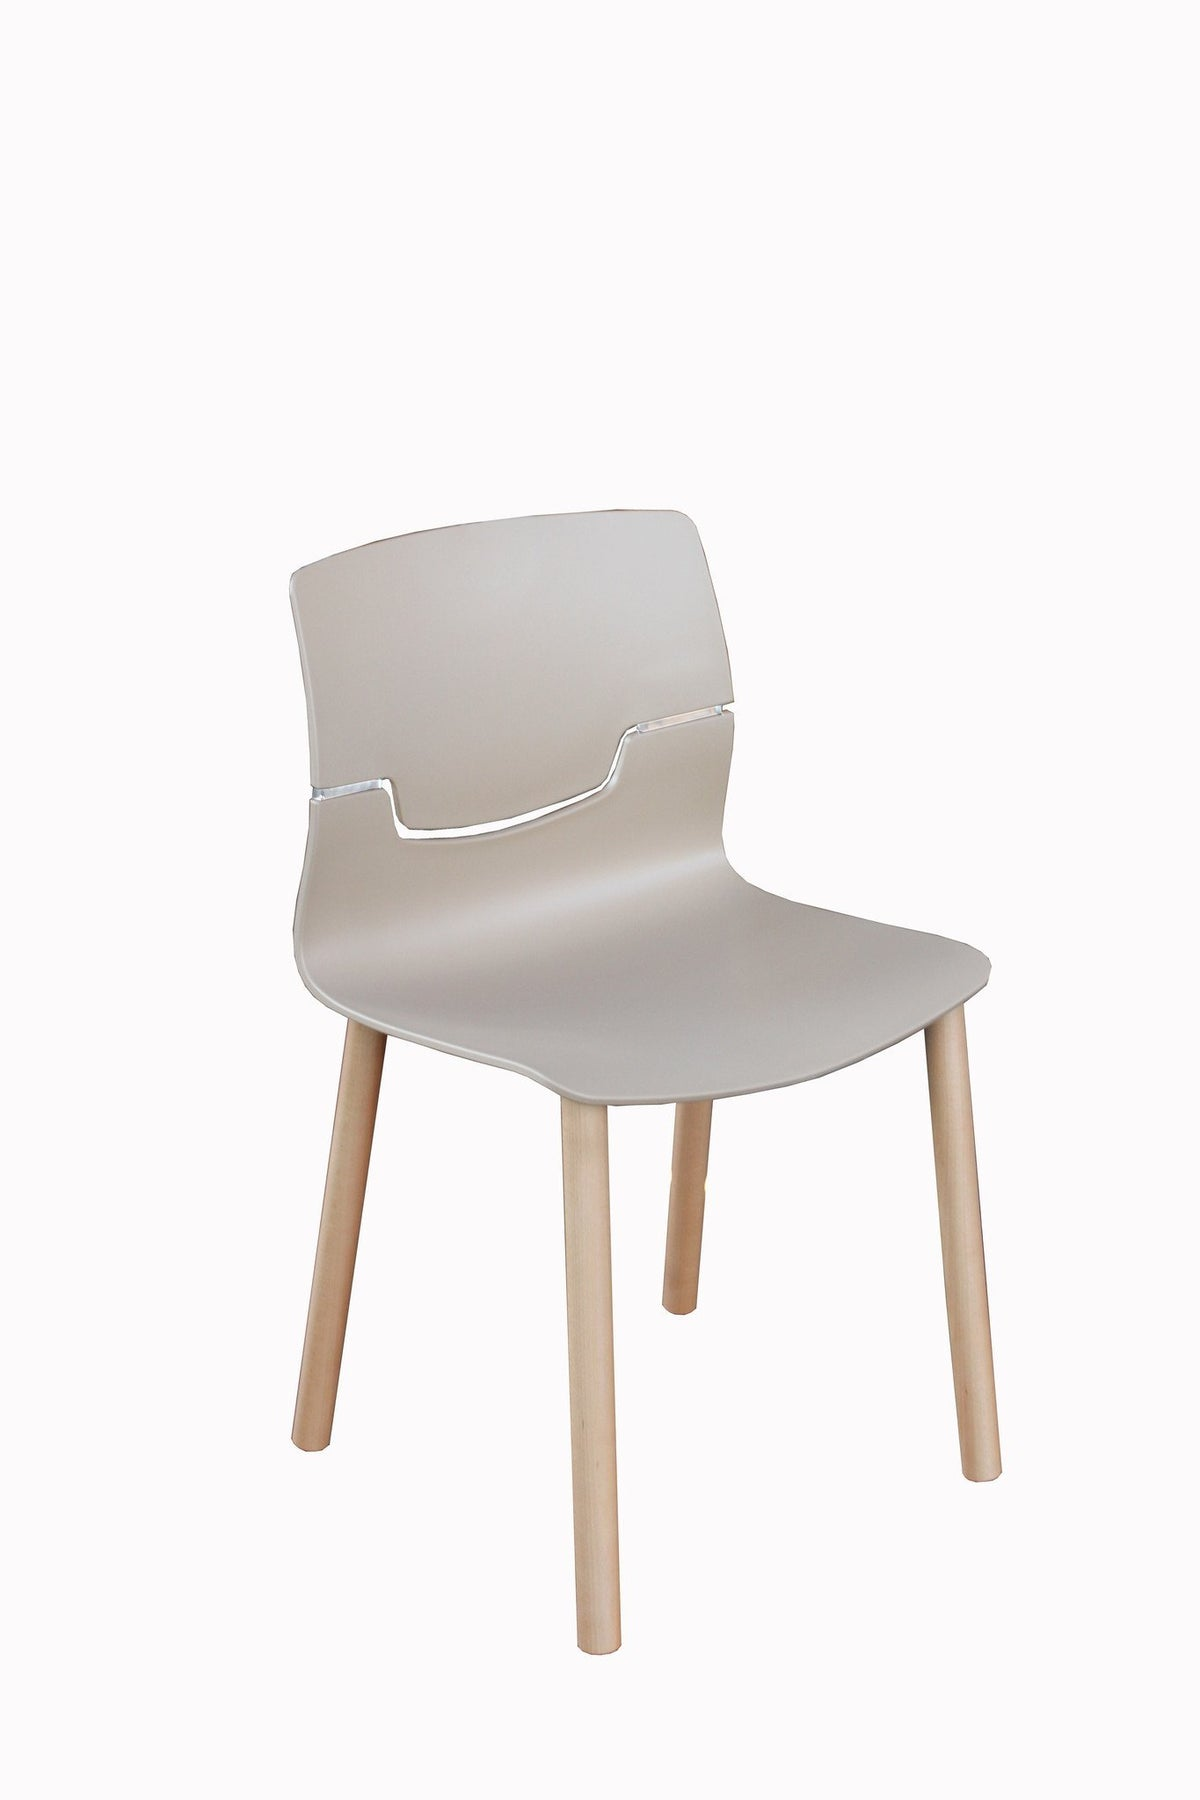 Slot Side Chair c/w Wood Legs-Gaber-Contract Furniture Store